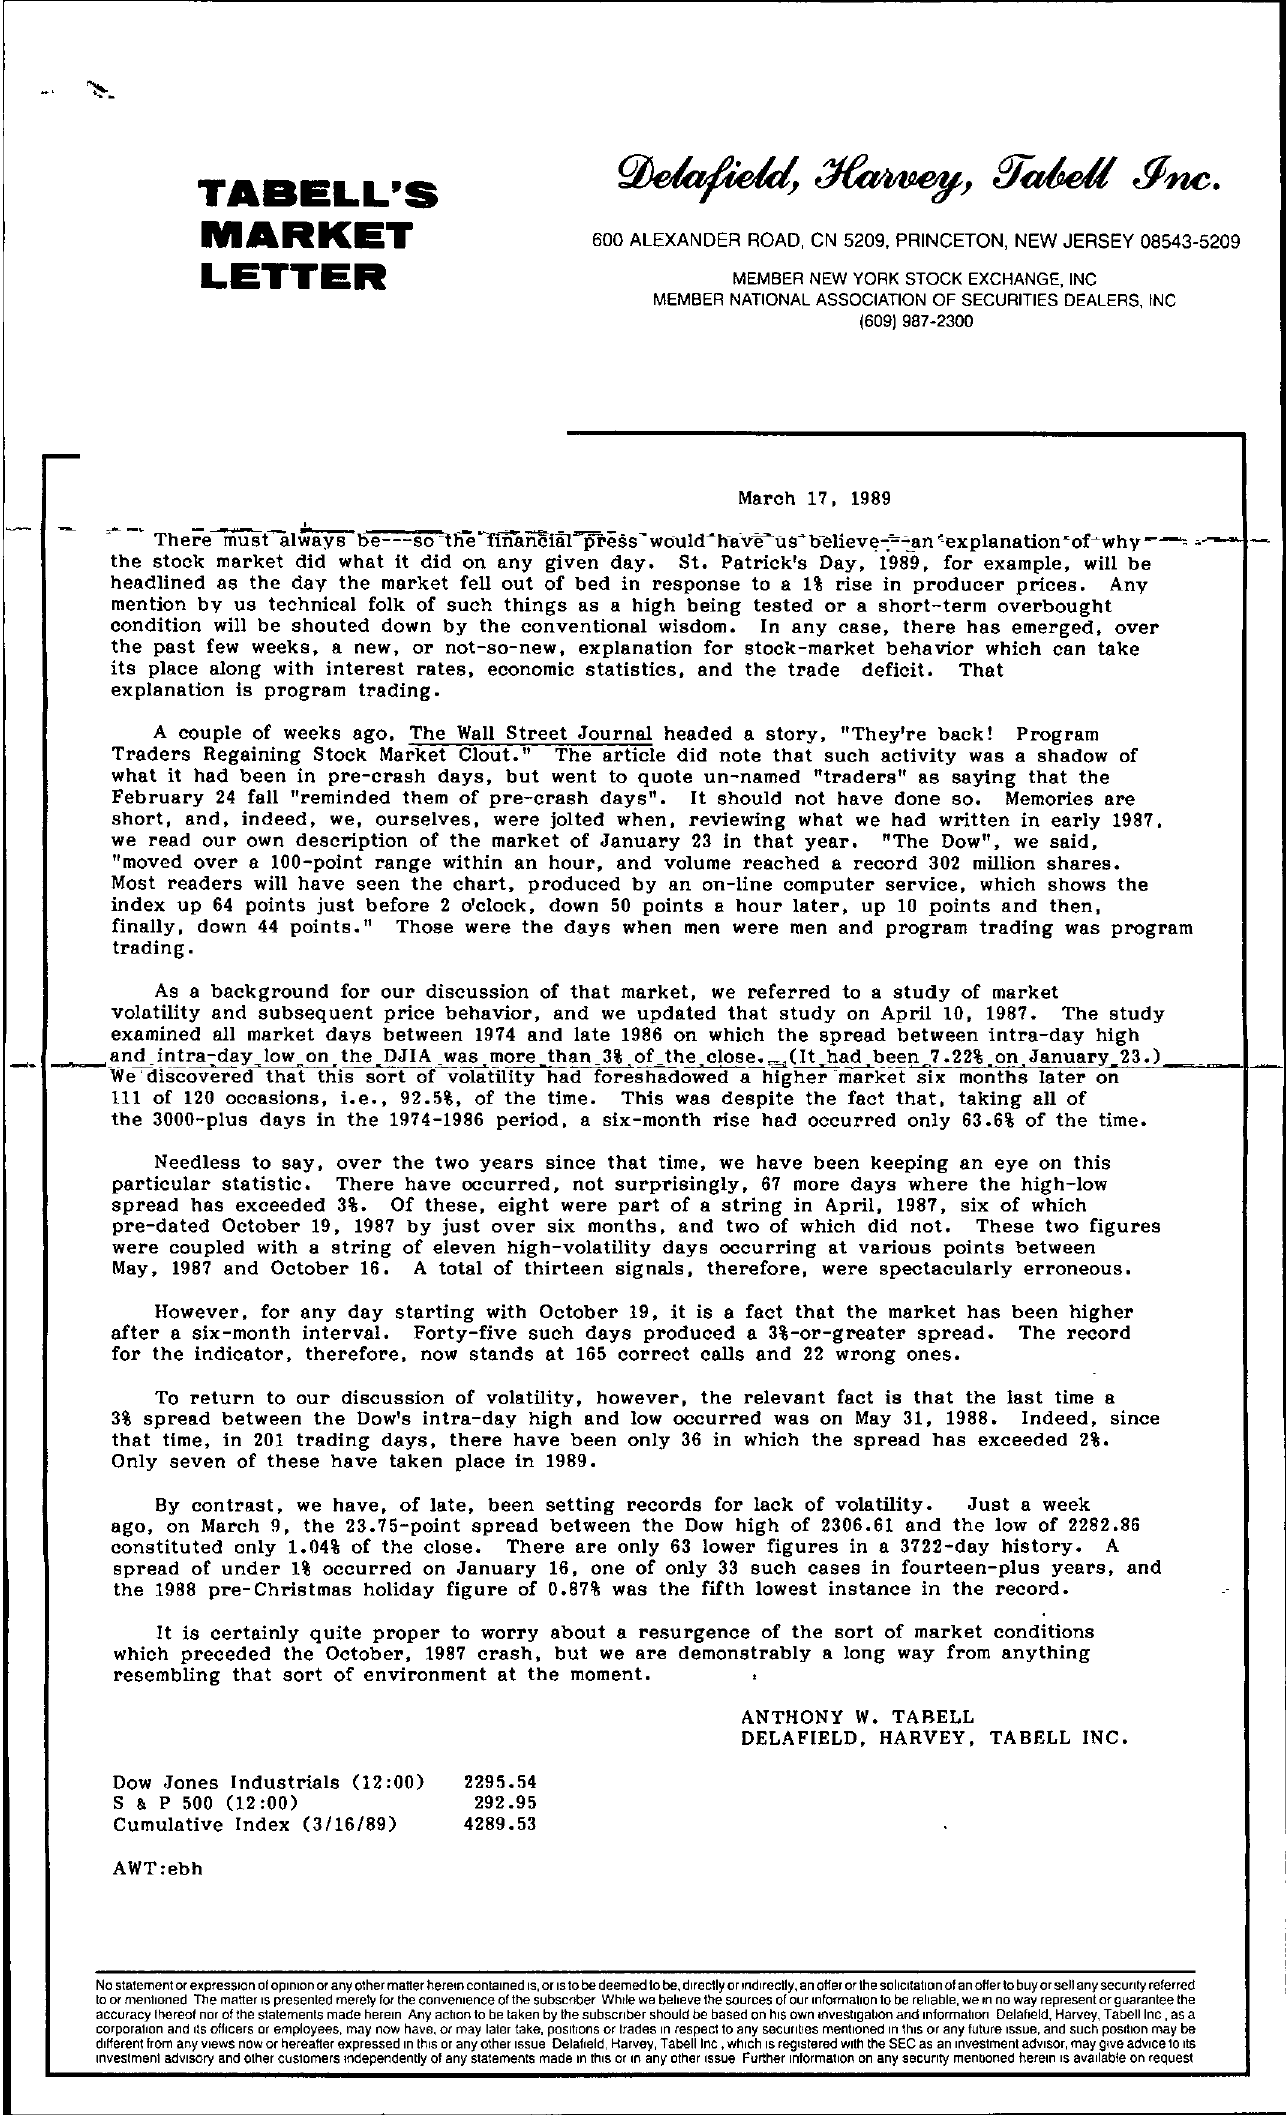 Tabell's Market Letter - March 17, 1989